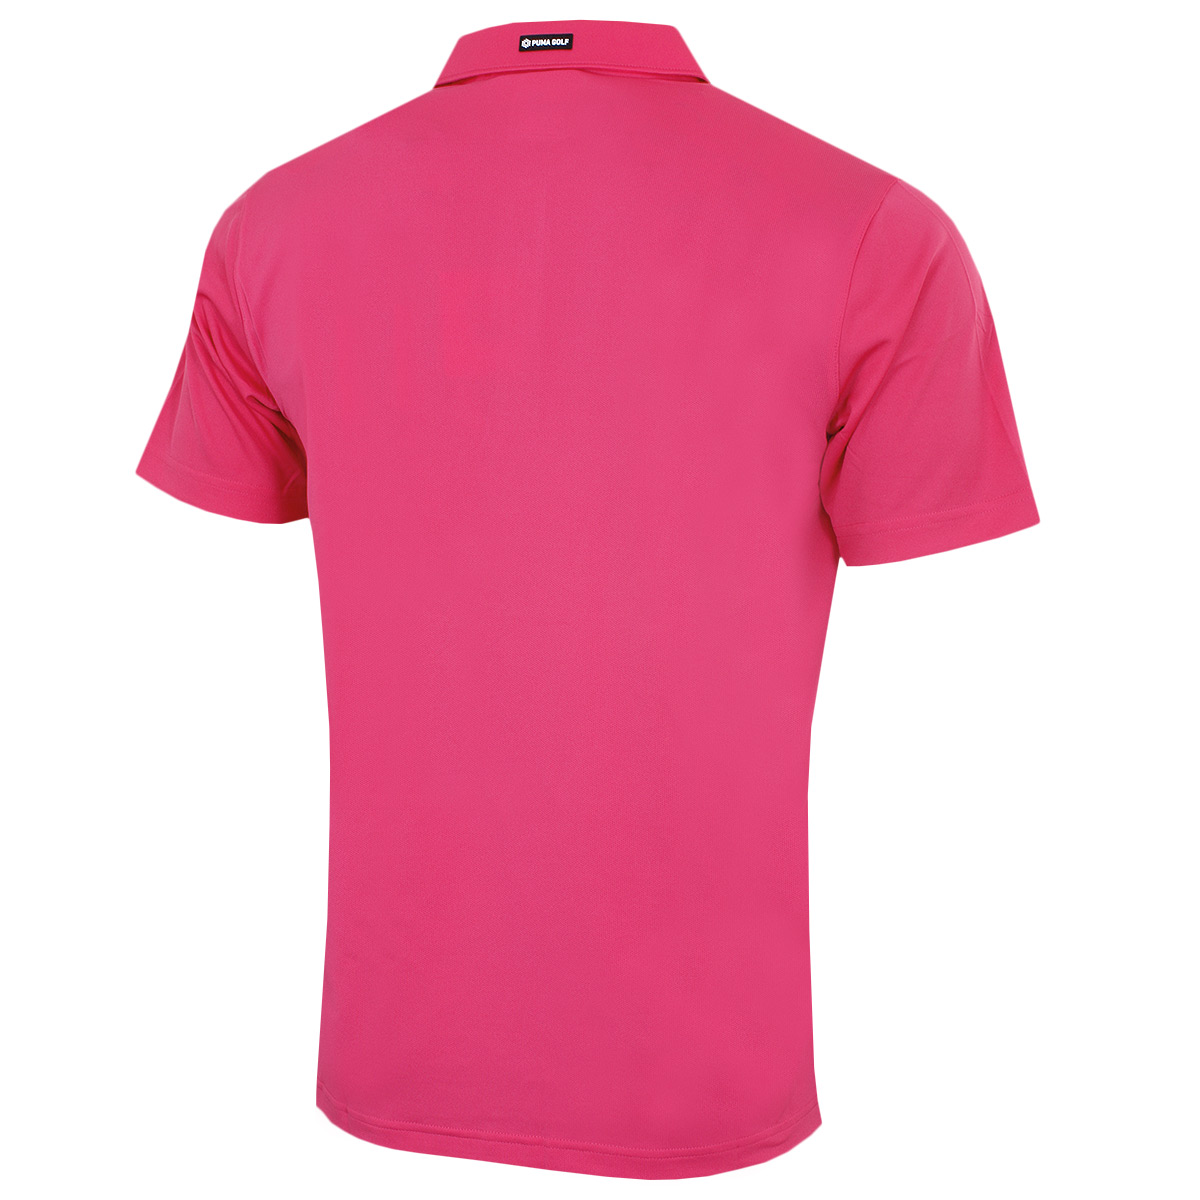 Puma-Golf-Mens-Essential-Pounce-Polo-Shirt-DryCell-Lightweight-Tech-43-OFF-RRP thumbnail 6